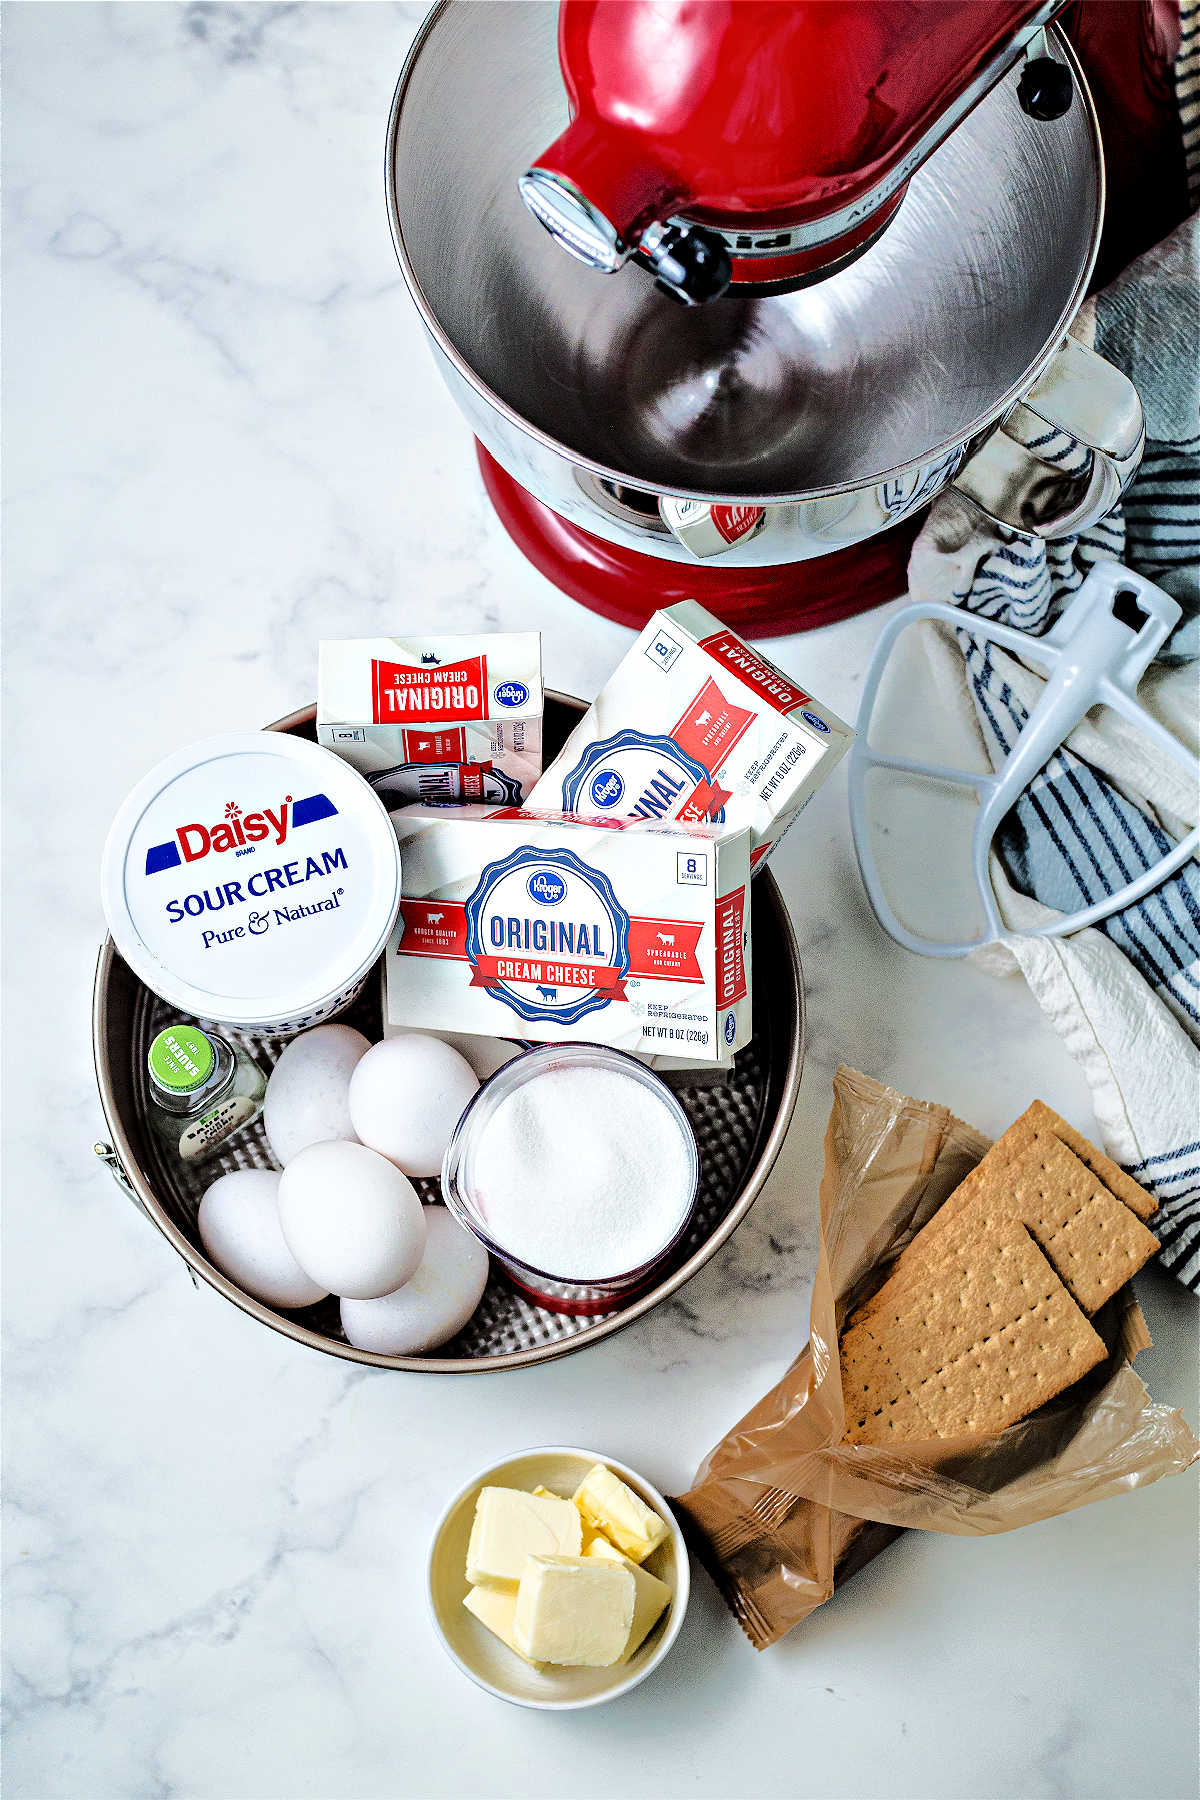 ingredients for strawberry cheesecake on a counter with a stand mixer and springform pan.